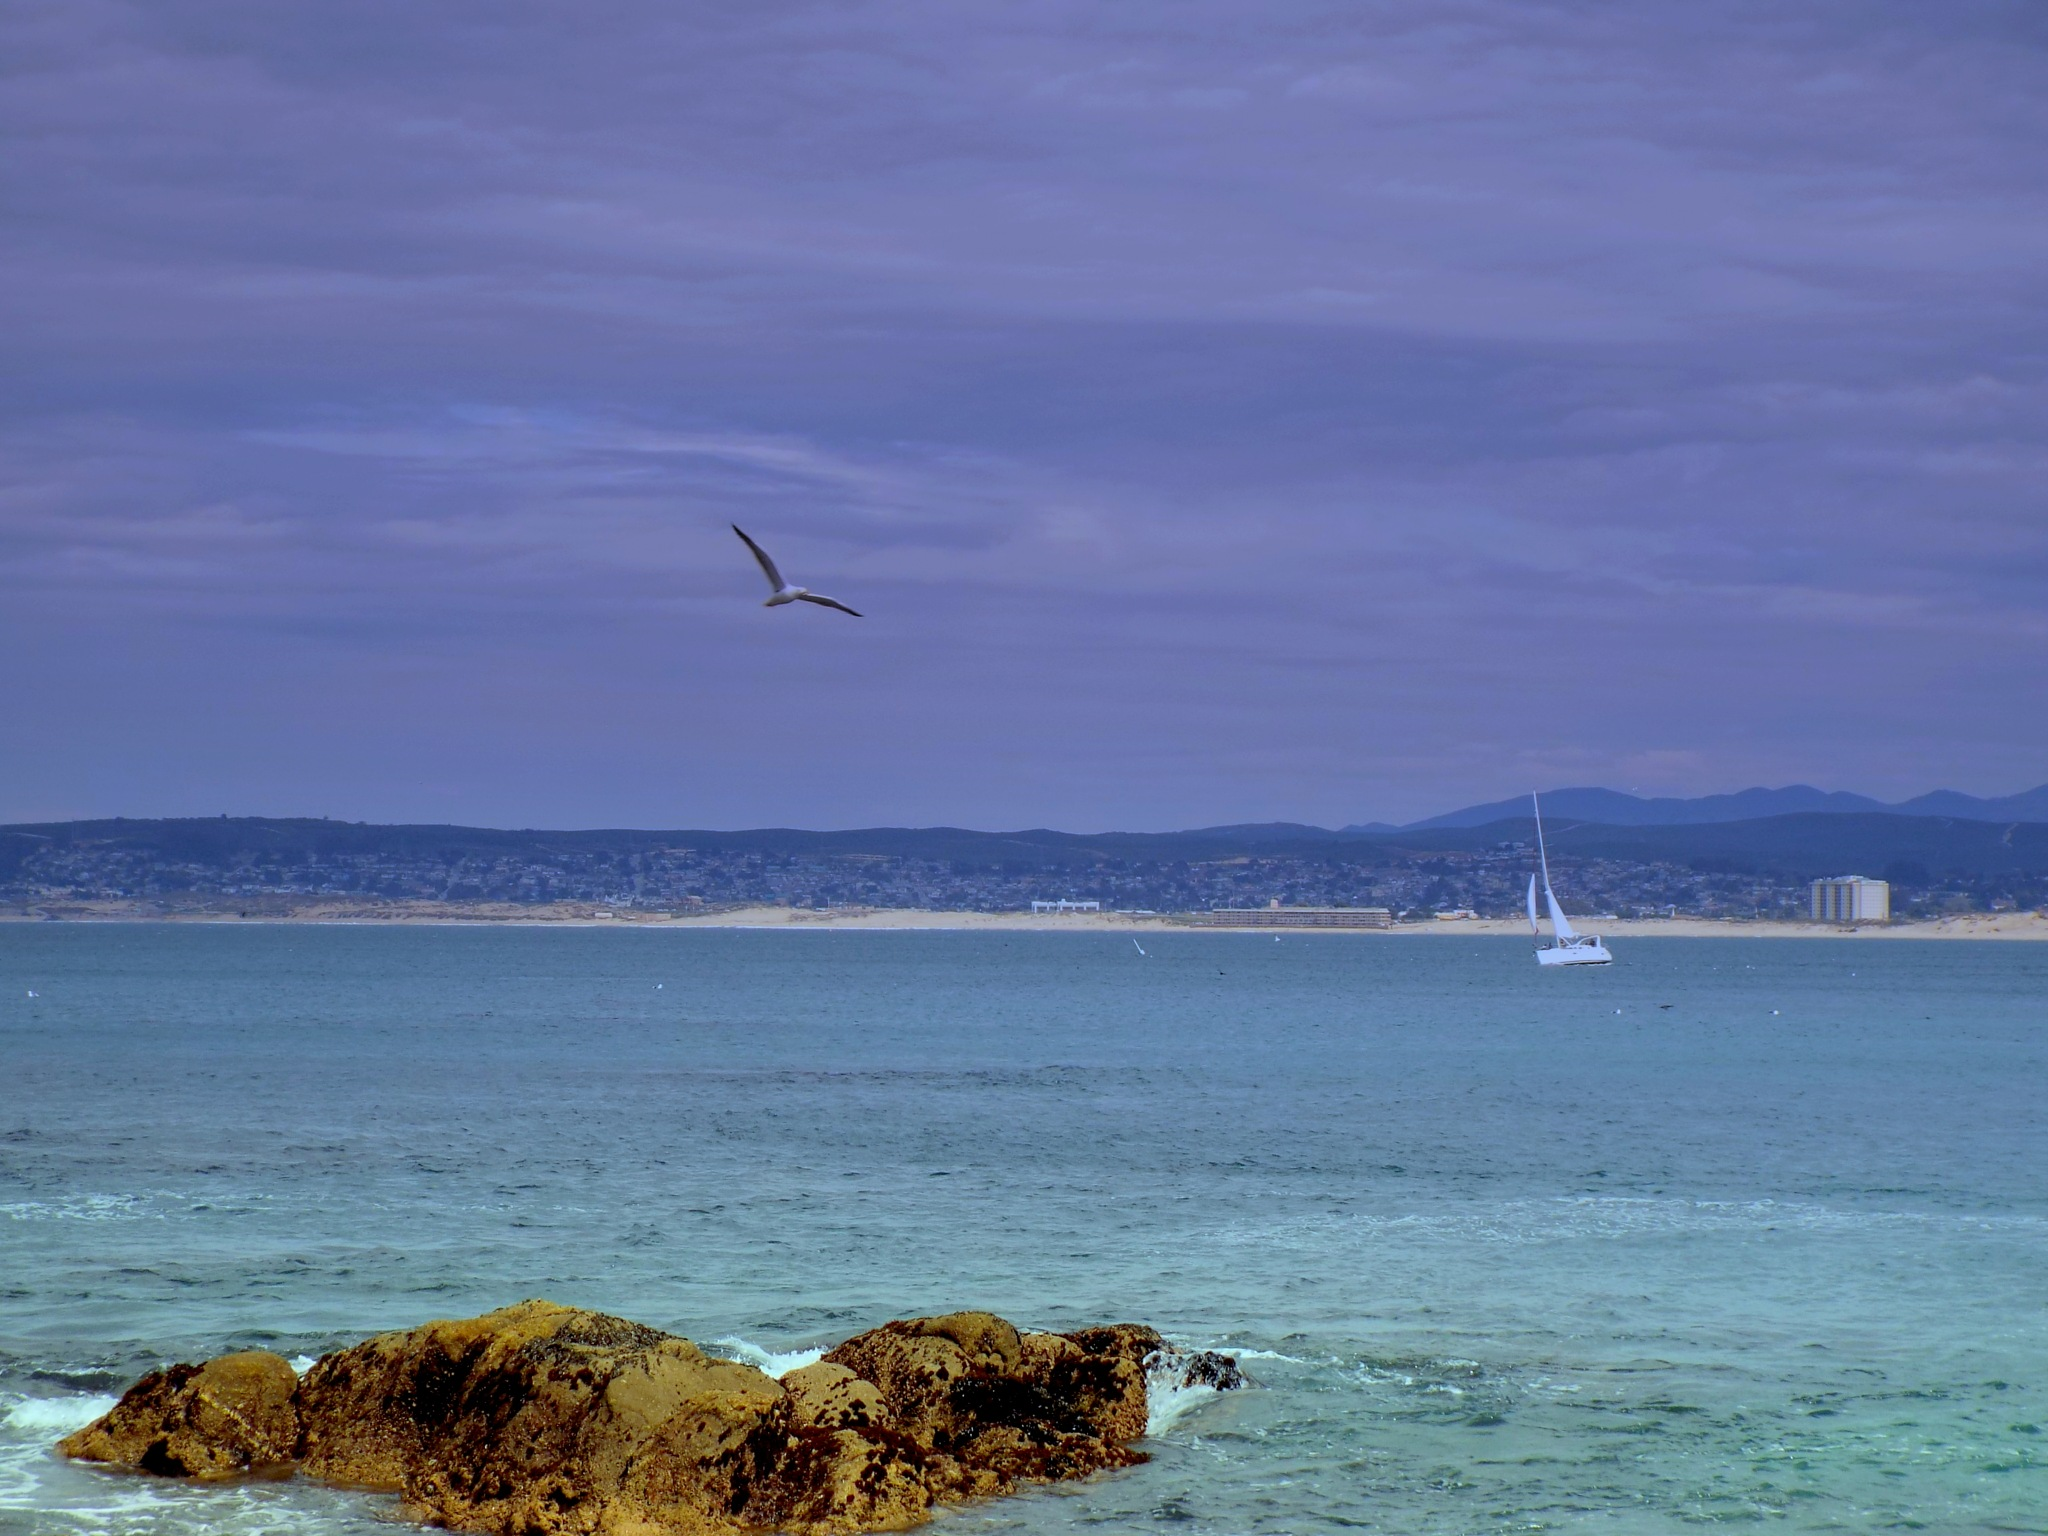 A VIEW FROM MONTEREY BAY. CALIFORNIA by Akin Saner